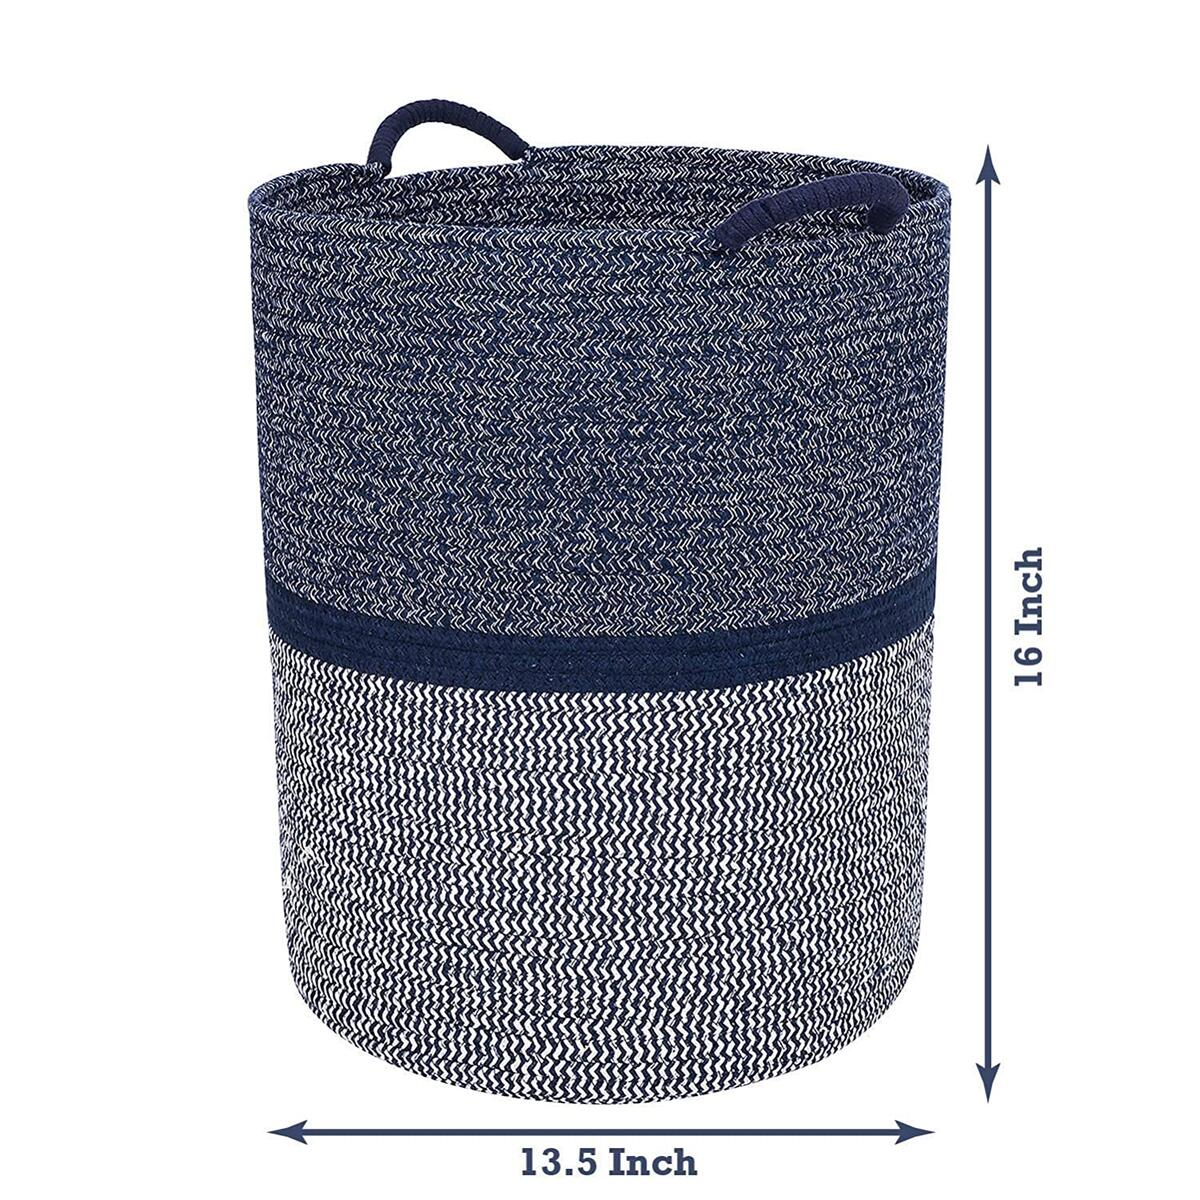 Premium Cotton Rope Basket for Laundry, Blanket, Towel, Nursery, Baby & Kids Toy Bin - Decorative Navy Blue & White Coiled Round Hamper with Handles - 16x13.5